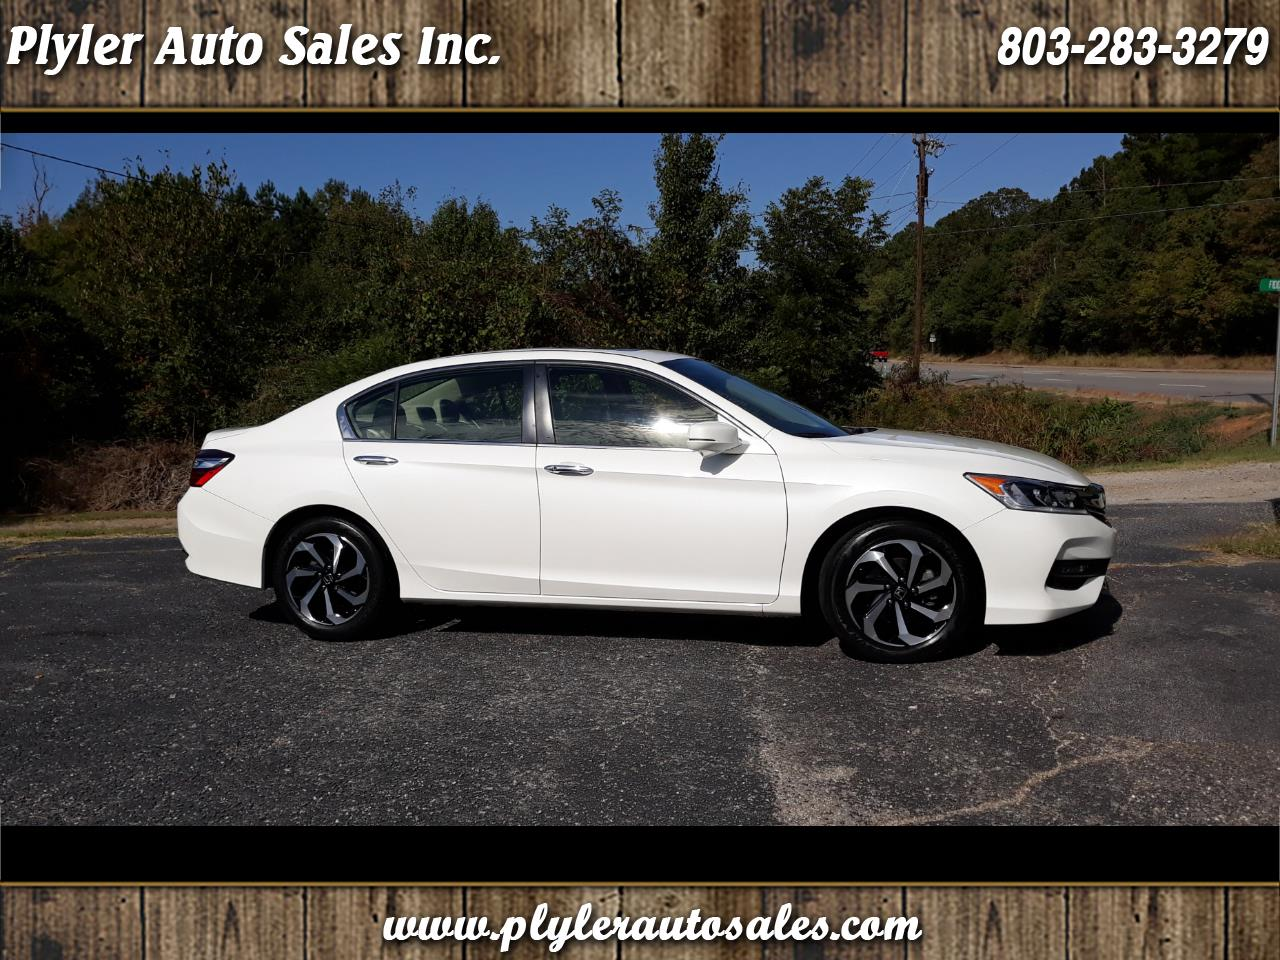 2017 Honda Accord EX-L Sedan CVT w/ Honda Sensing